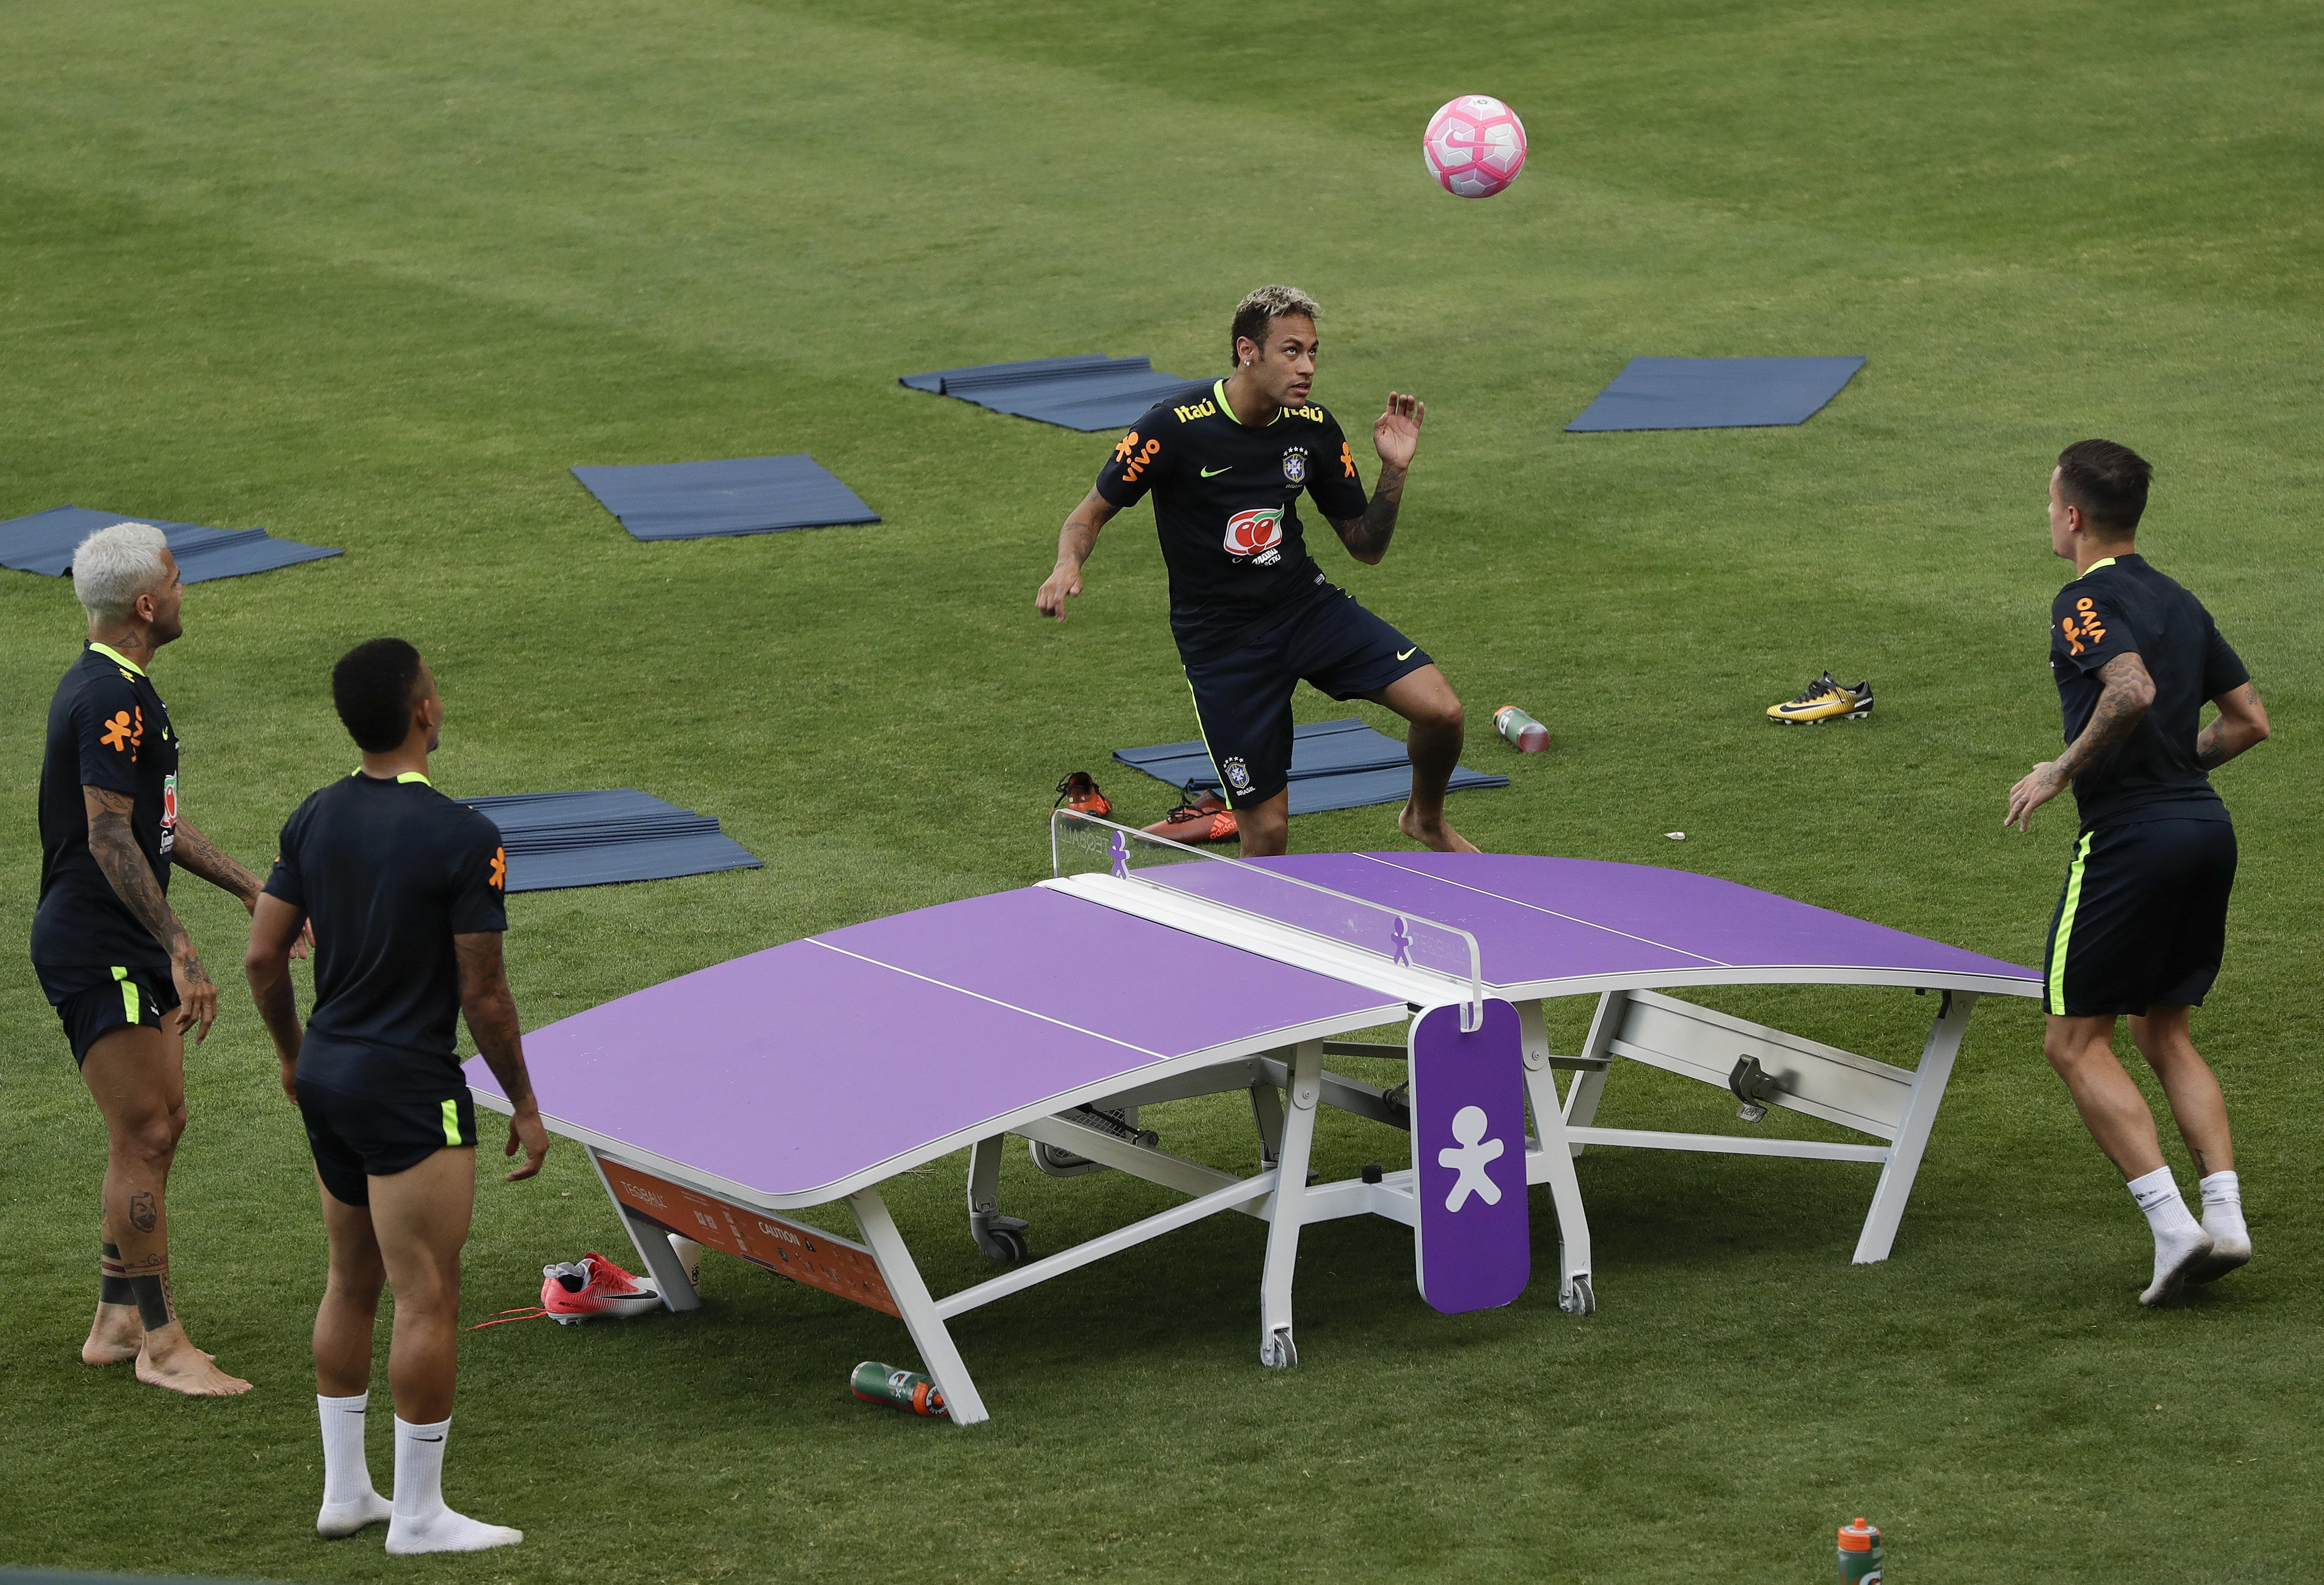 Brazil's Neymar,, practices with teammates Philippe Coutinho, Dani Alves, and Gabriel Jesus, during a training session in preparation for an upcoming World Cup qualifying match, in Sao Paulo, Brazil